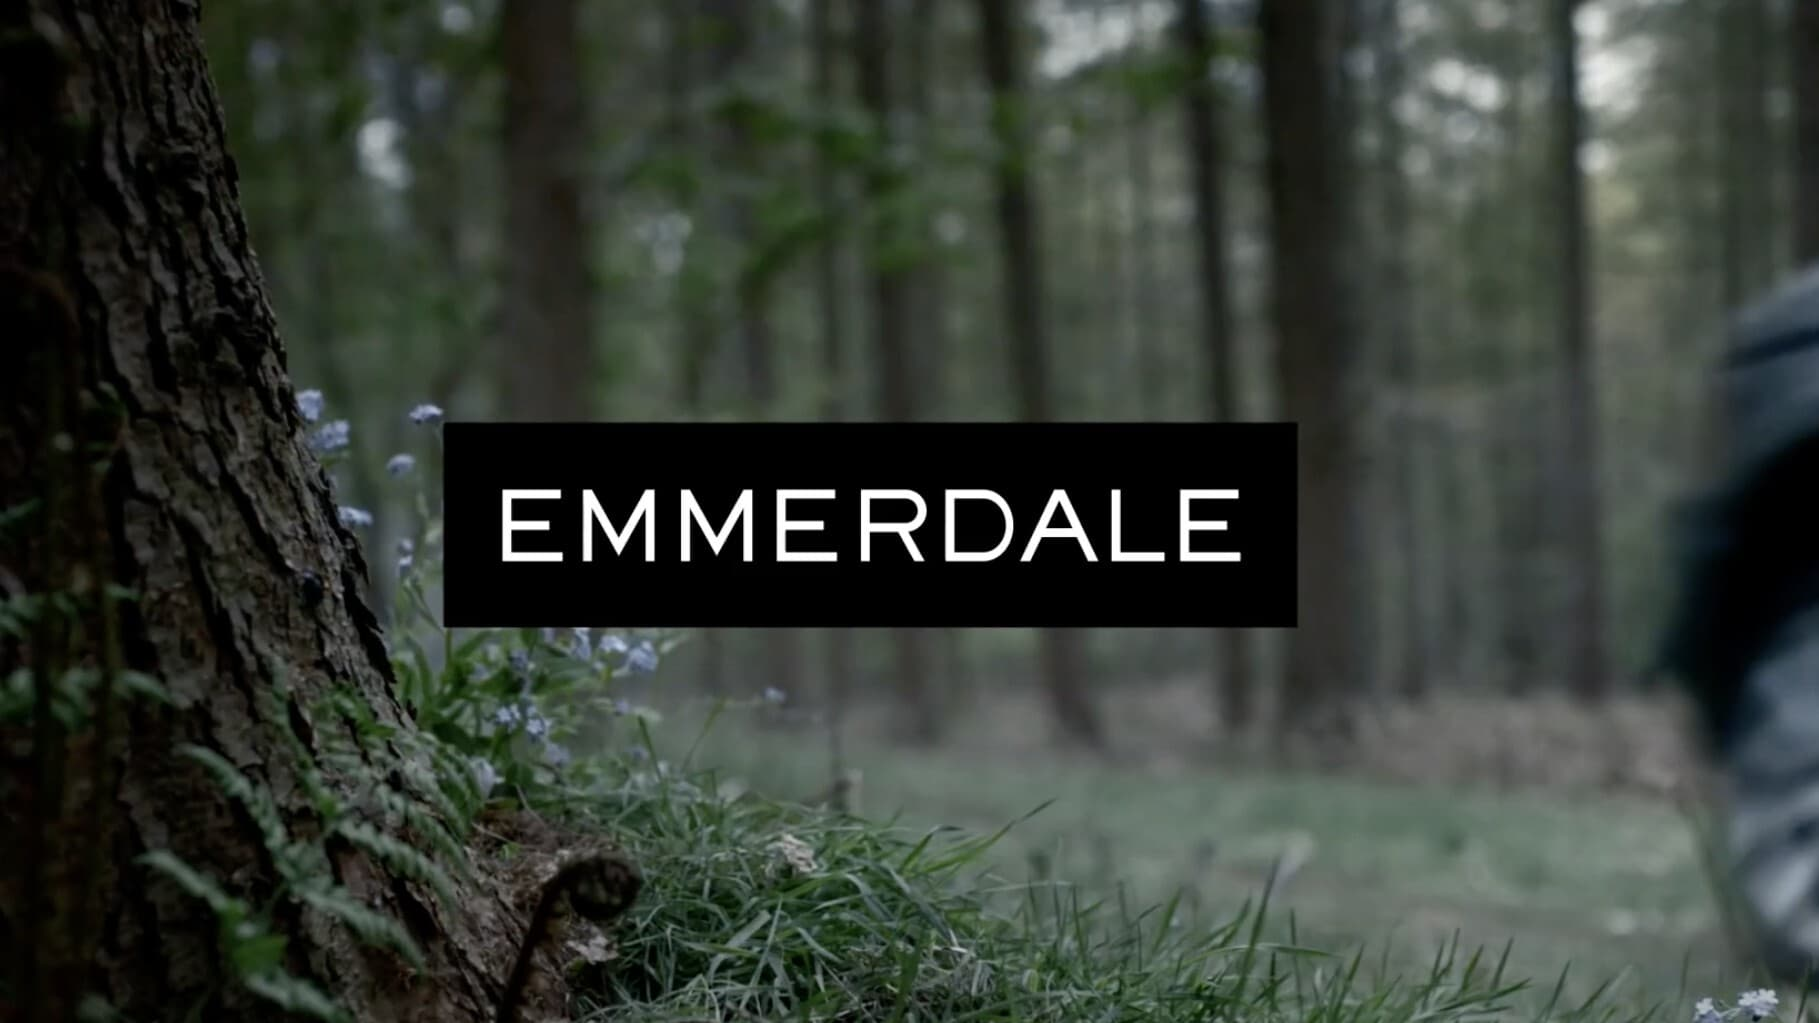 Emmerdale - Season 46 Episode 266 : Wednesday 23rd October 2019